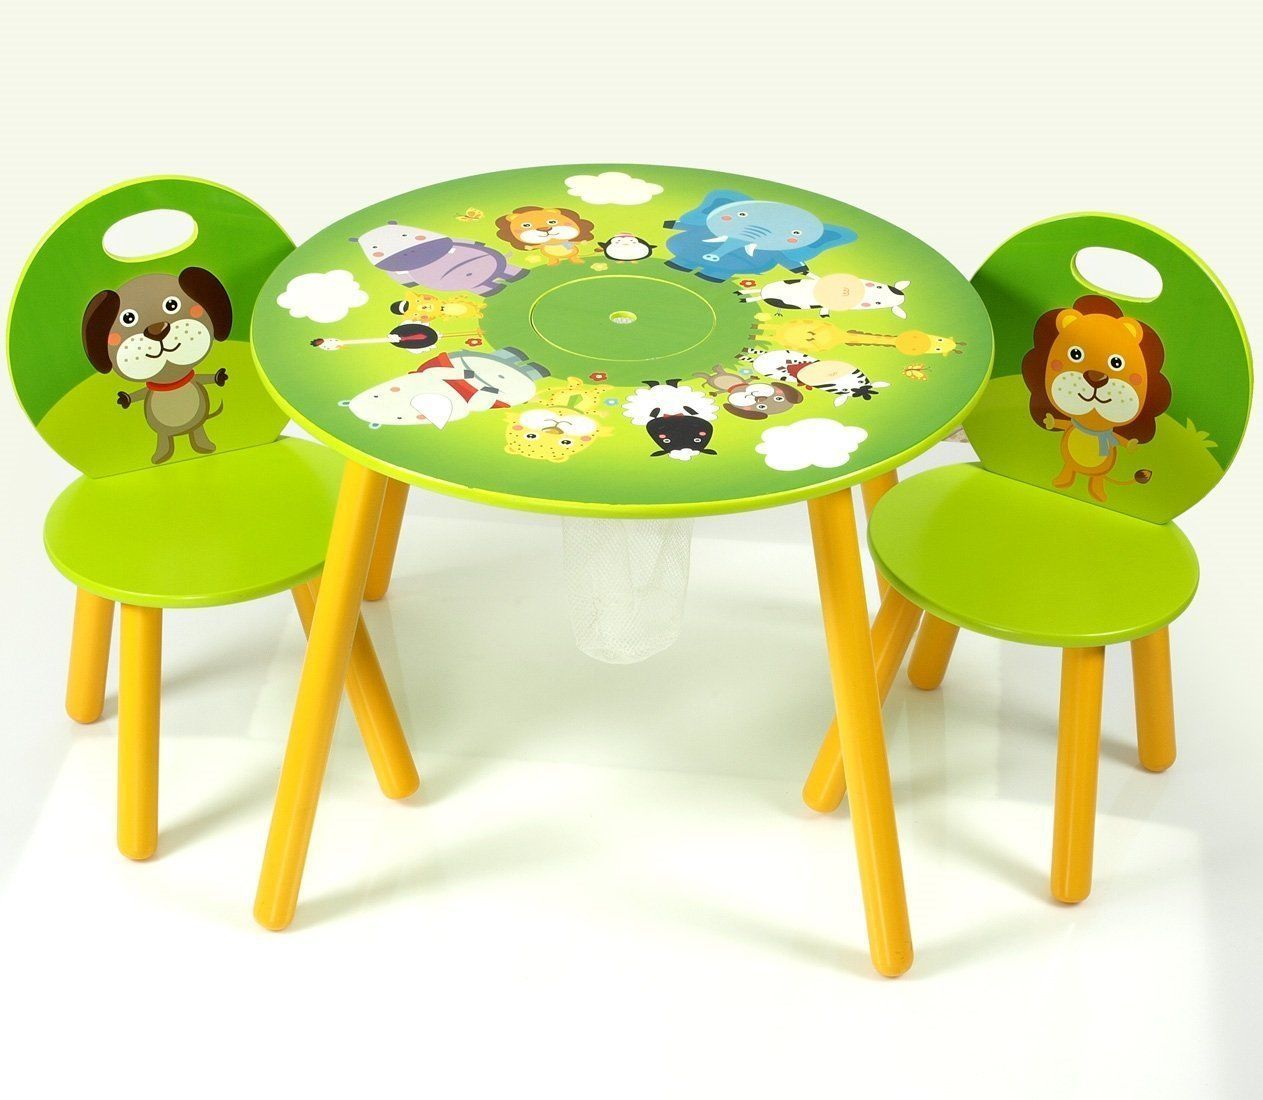 Kids Table And Chair Set  sc 1 st  Pinterest & Kids Table And Chair Set | Chair Sets | Pinterest